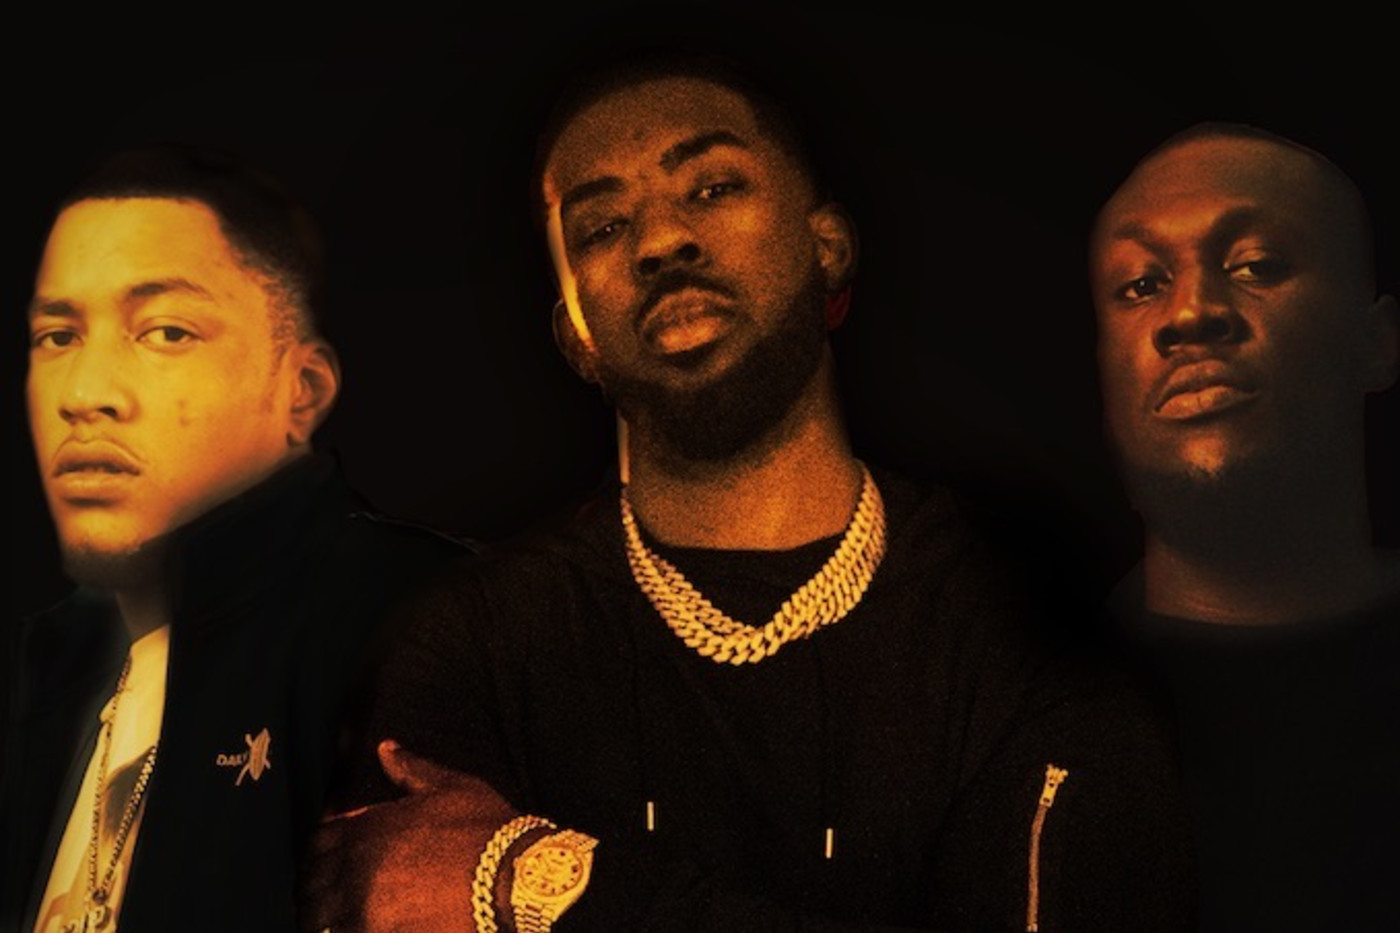 """Tion Wayne, Dutchavelli, Stormzy Shake Things Up With New Drop """"I Dunno""""    Complex"""